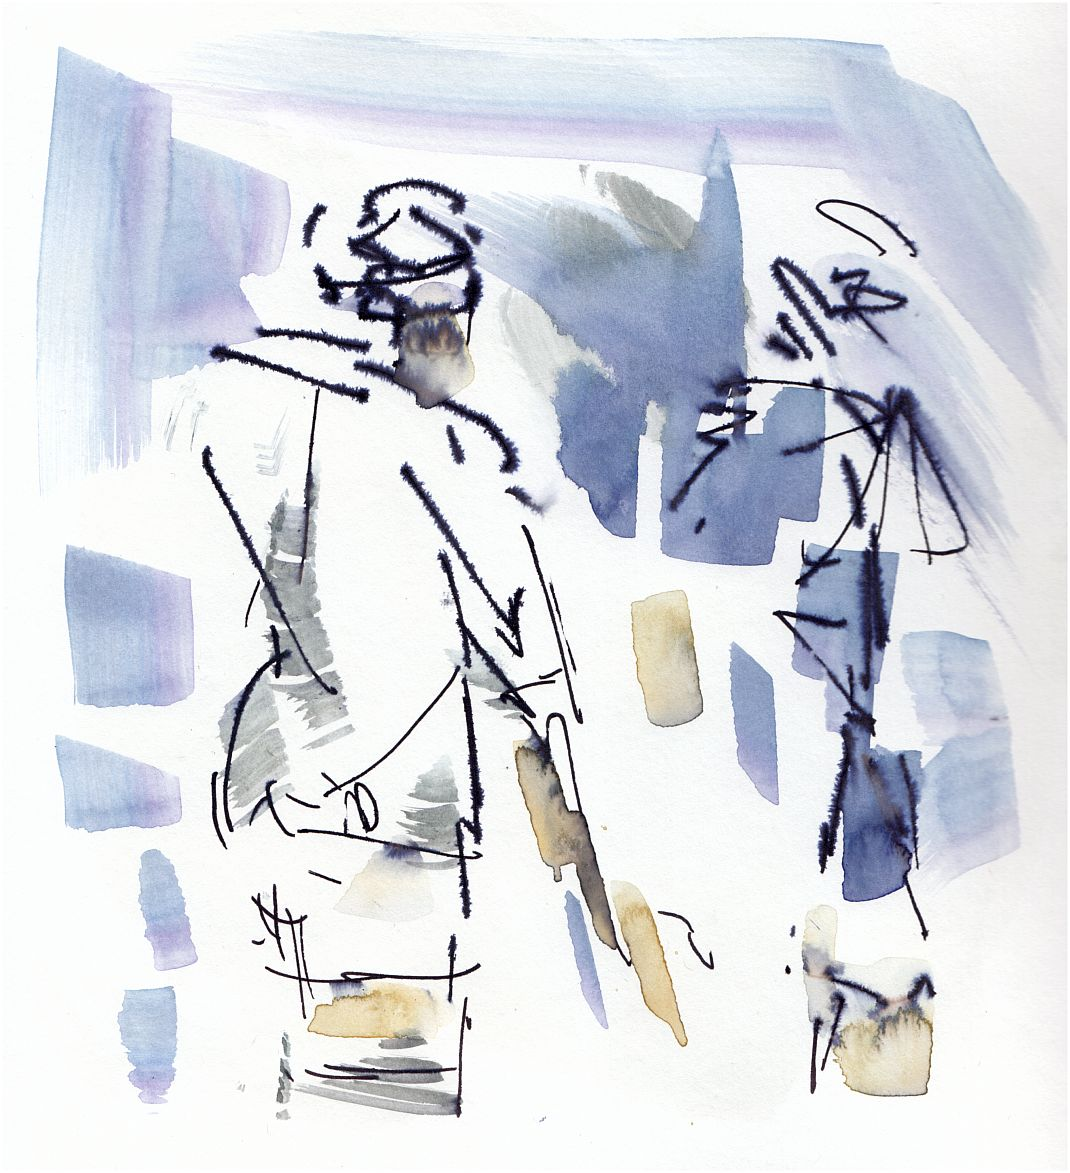 Six Nations, Rugby art, England v Scotland - Pause